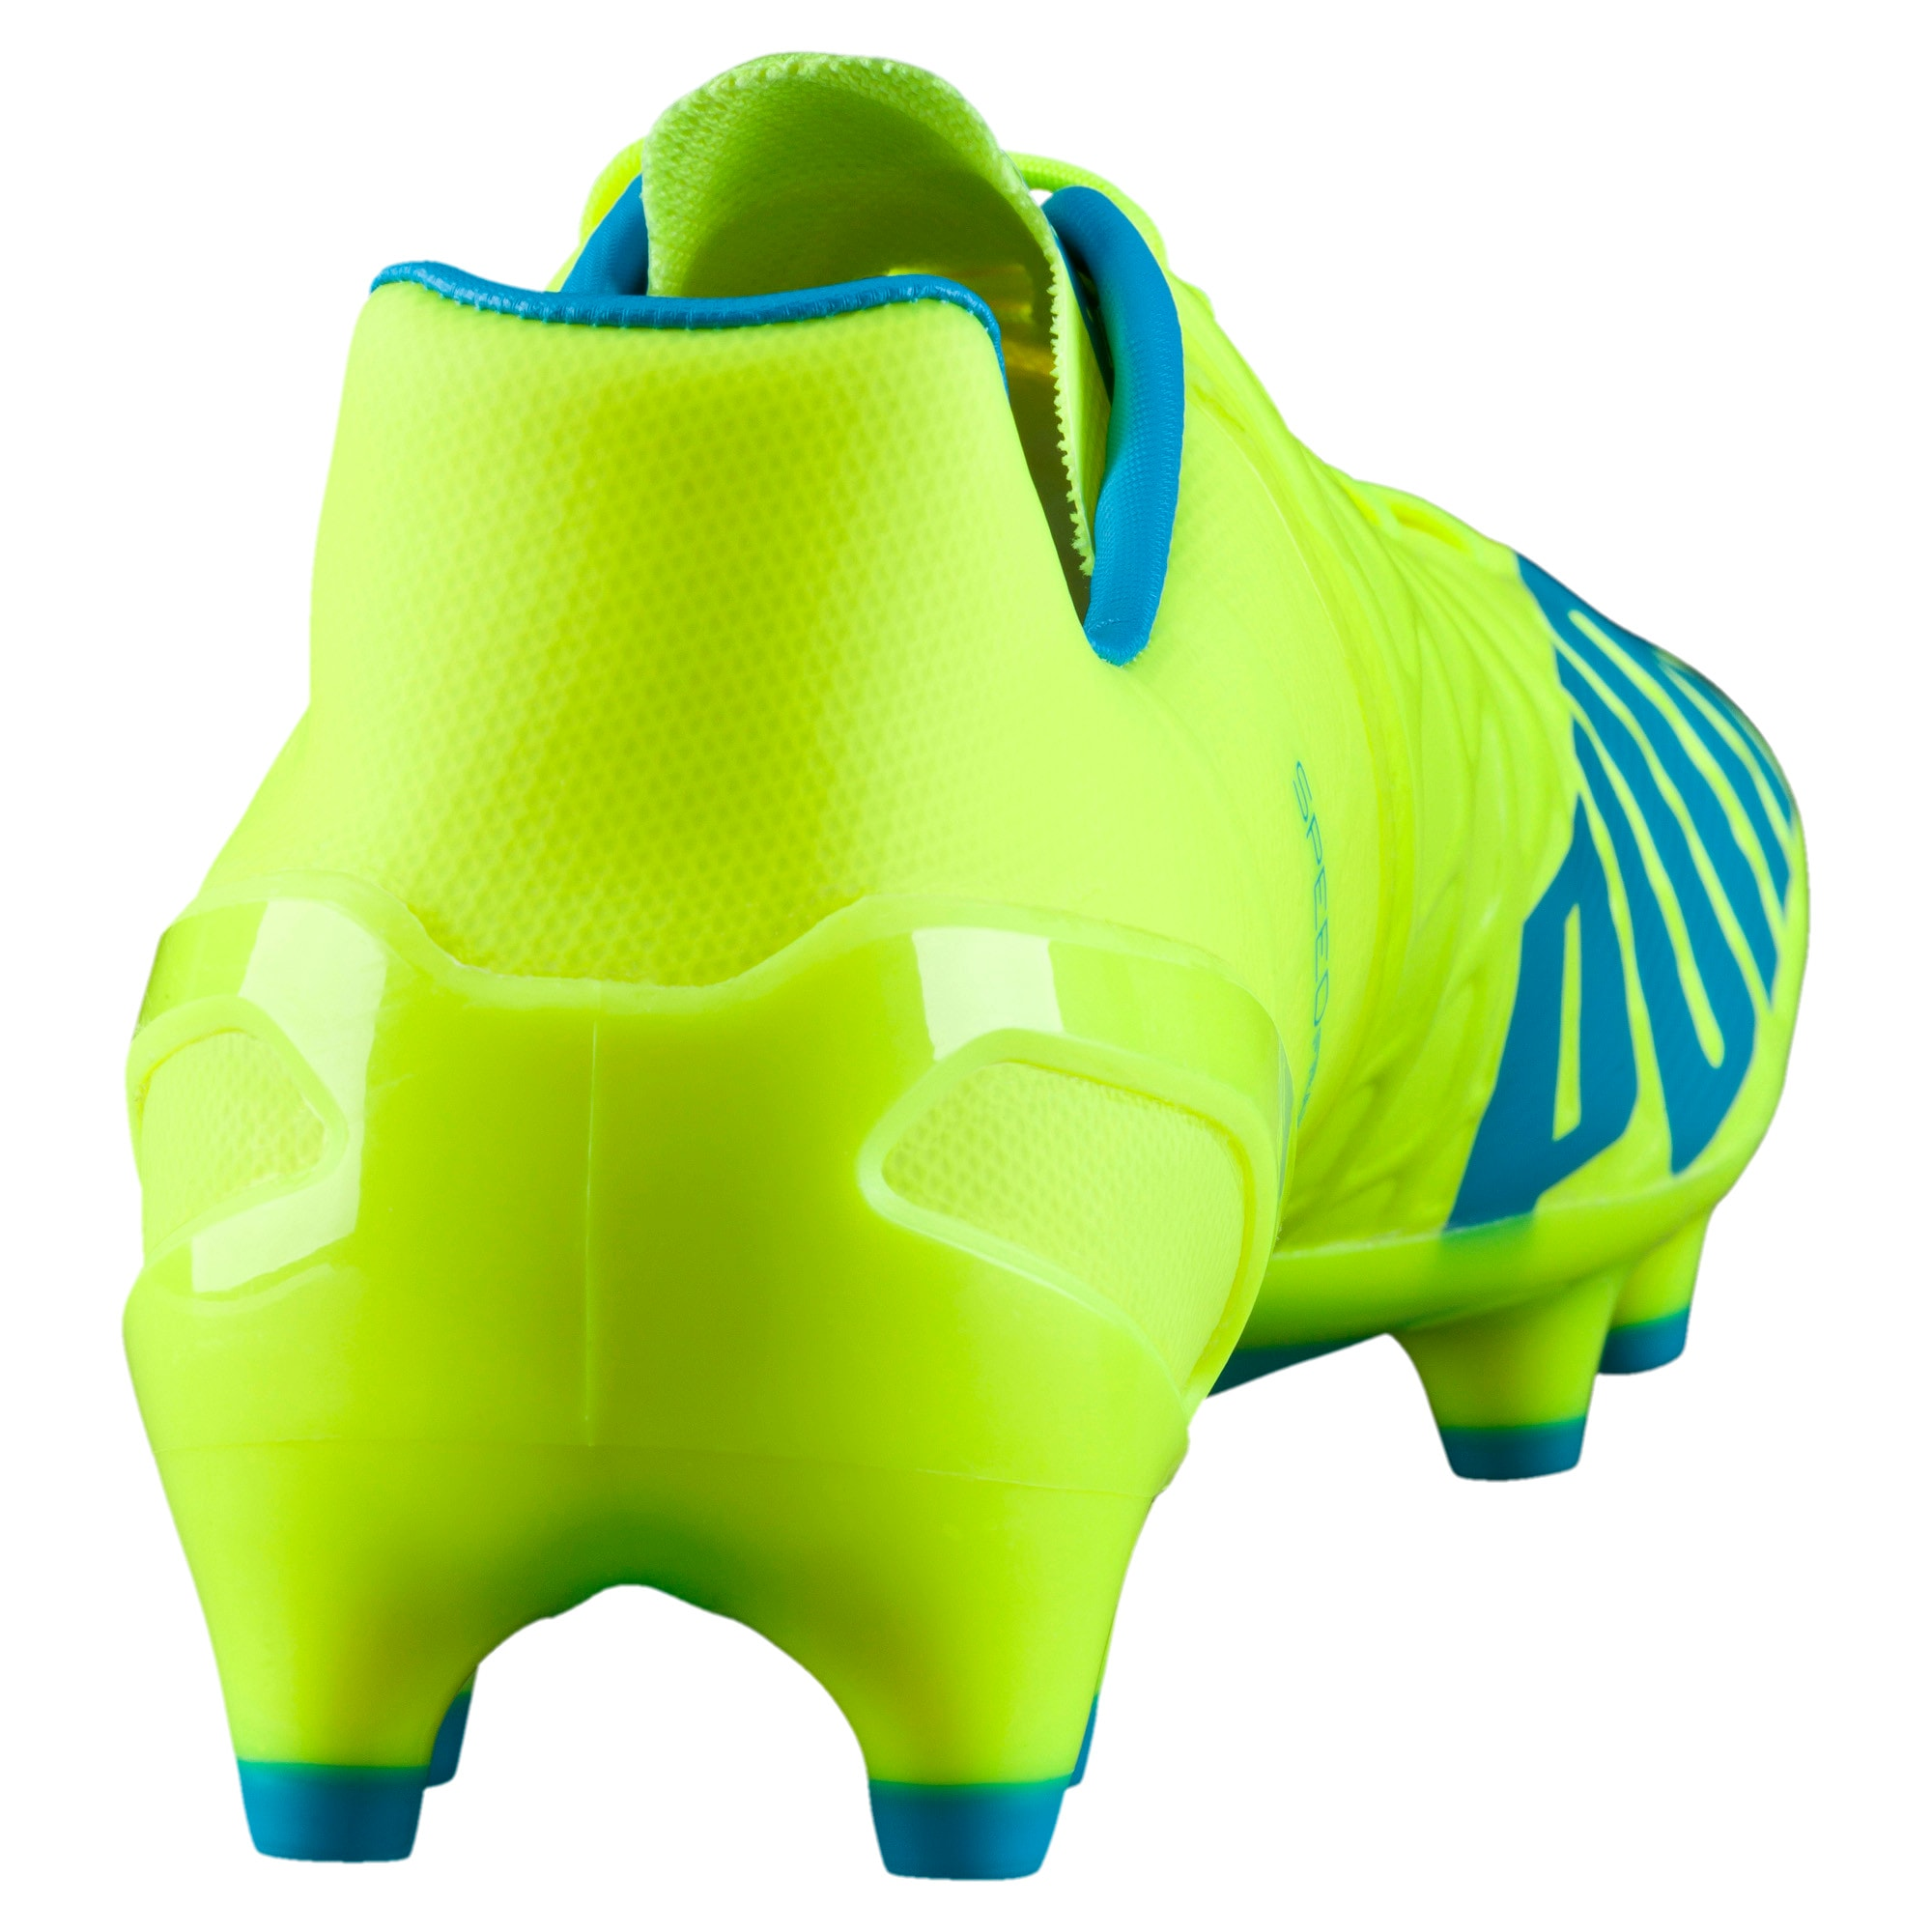 Thumbnail 3 of evoSPEED 1.4 FG Football Boots, yellow-blue-white, medium-IND